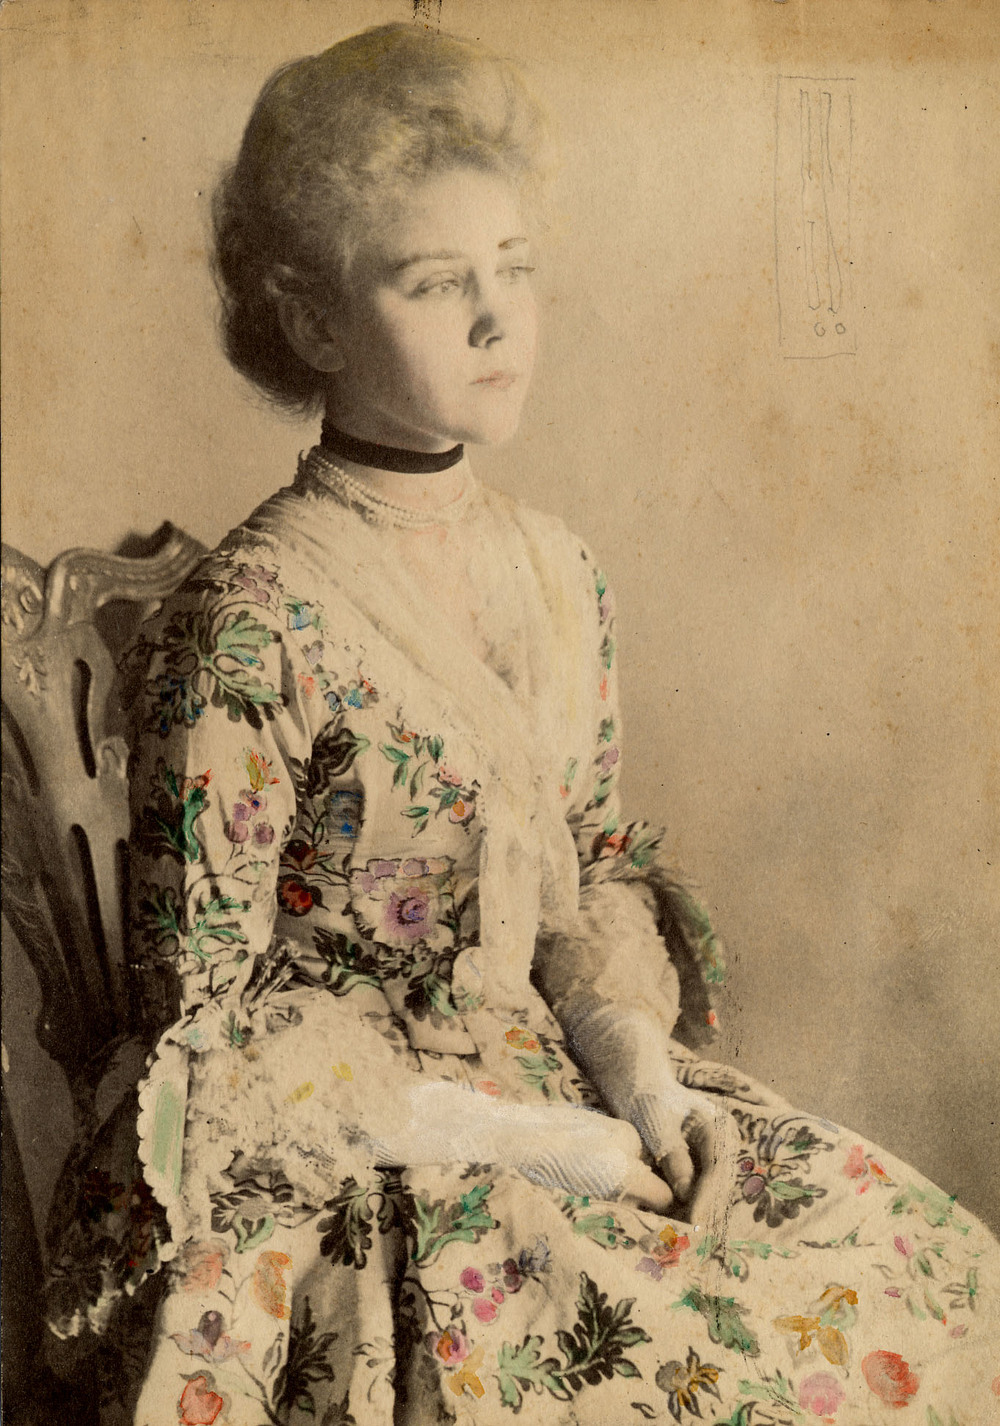 Catharine Huntington (1887-1987)  (pictured here) also wore Elizabeth Pitkin's wedding dress. This black and white photograph has been hand-colored to indicate how it would have looked when Catharine wore it around the start of the 20th century.